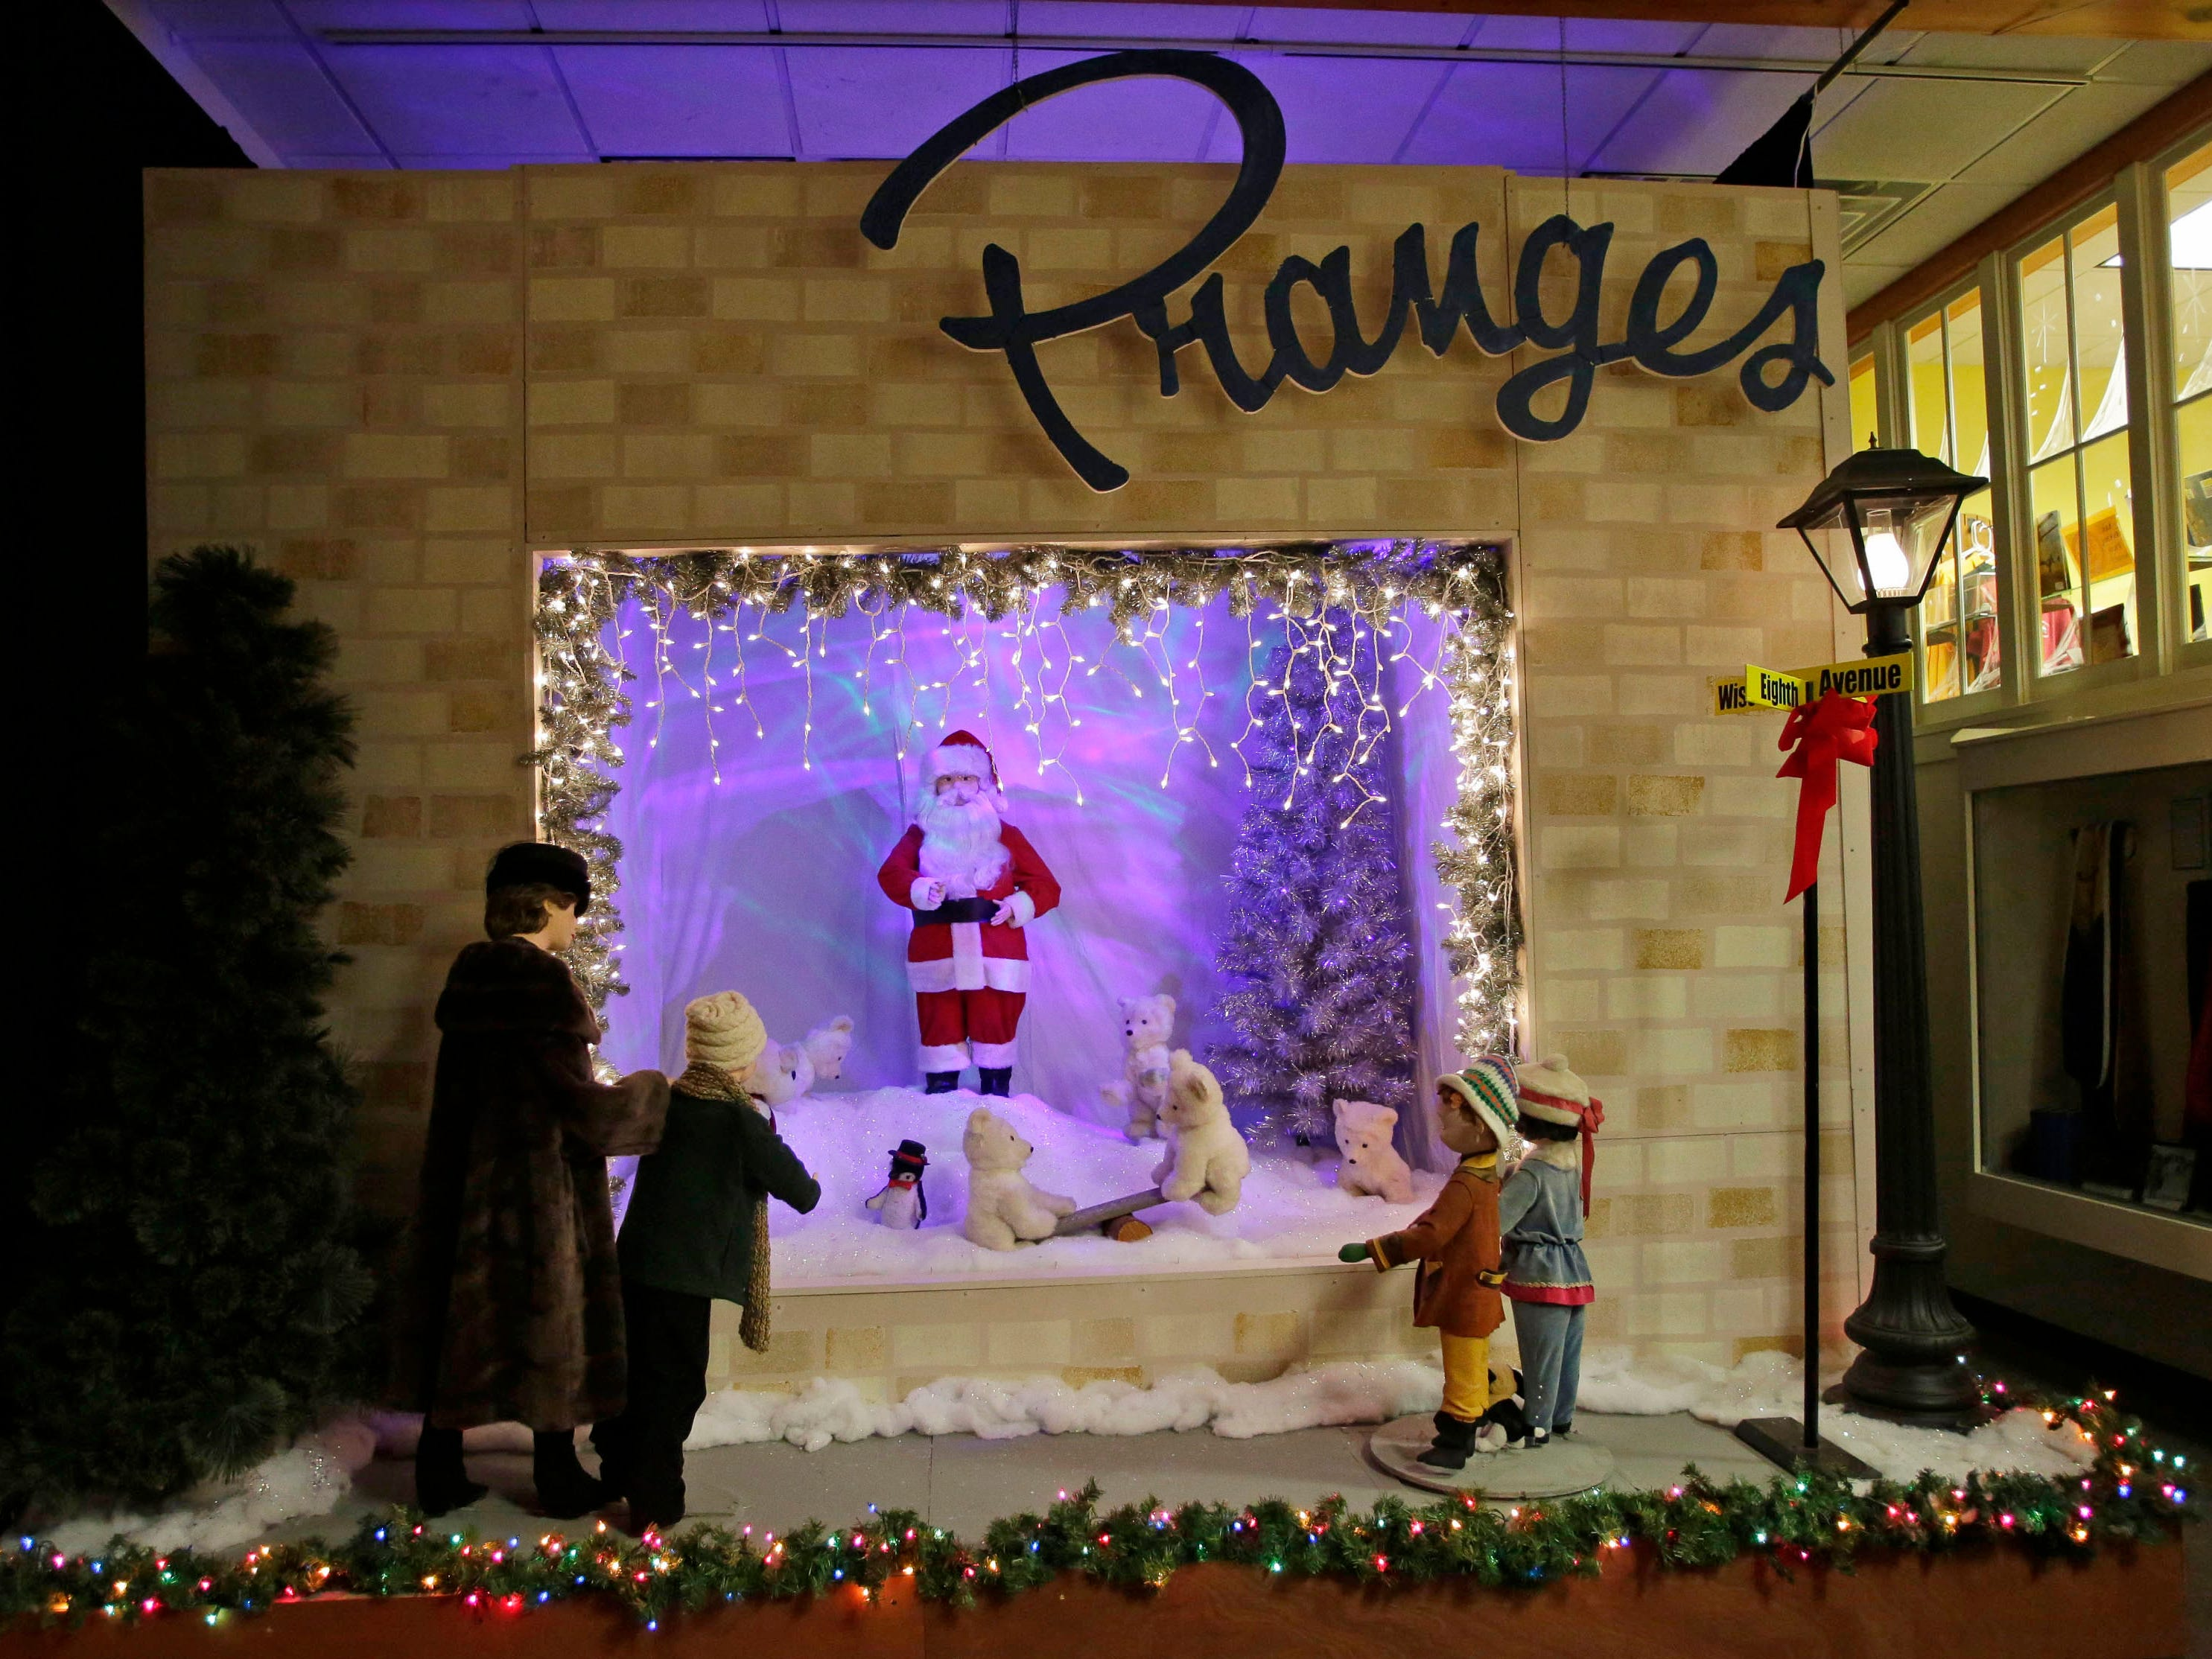 A Prange's window scene from the Sheboygan County Historical Museum's Holiday Memories, Friday, November 23, 2018, in Sheboygan, Wis.